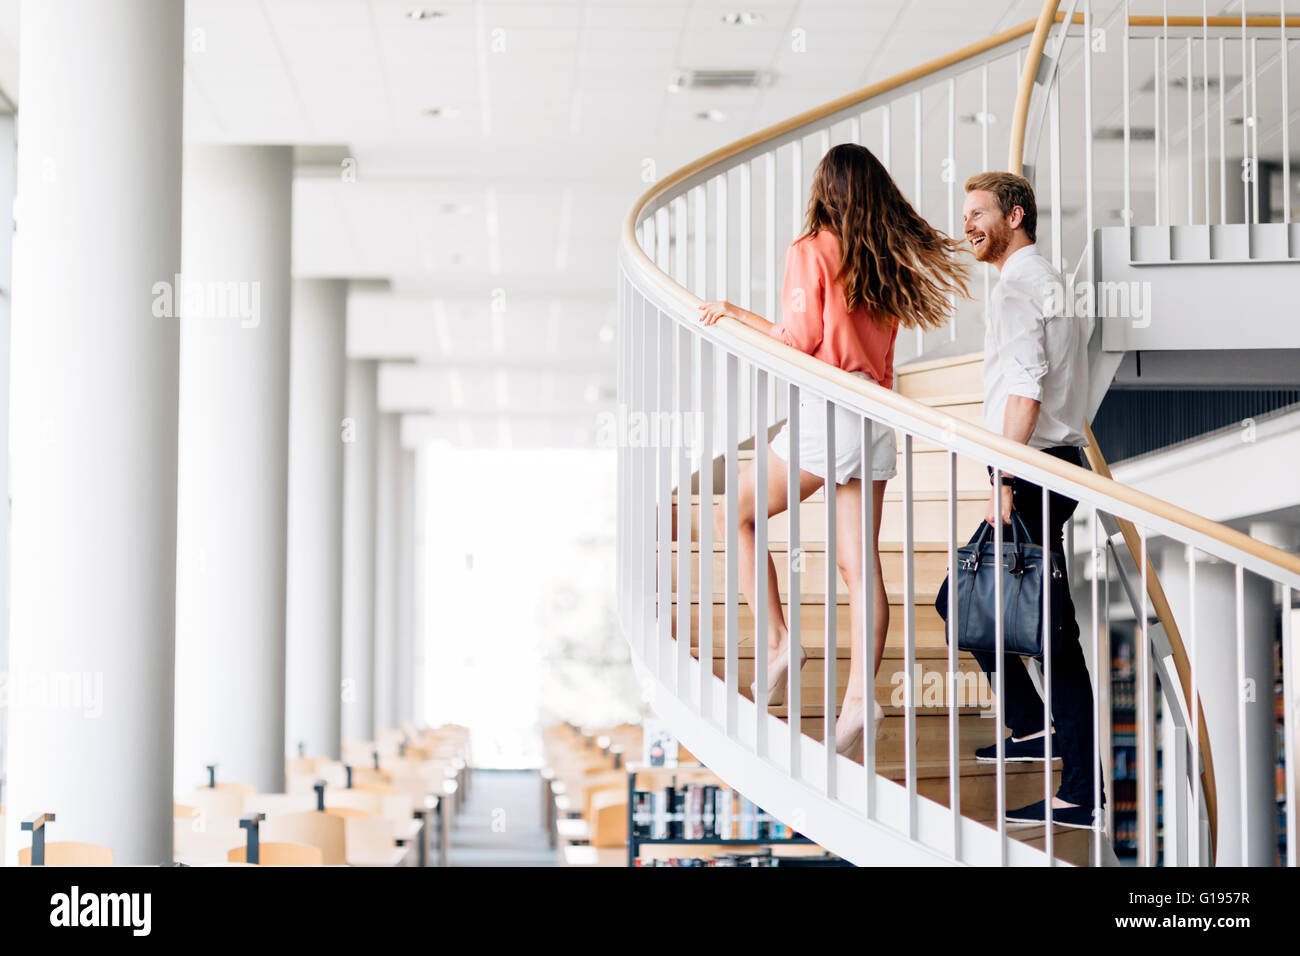 Beautiful businesswoman handsome businessman climbing stairs in a beautiful environment - Stock Image